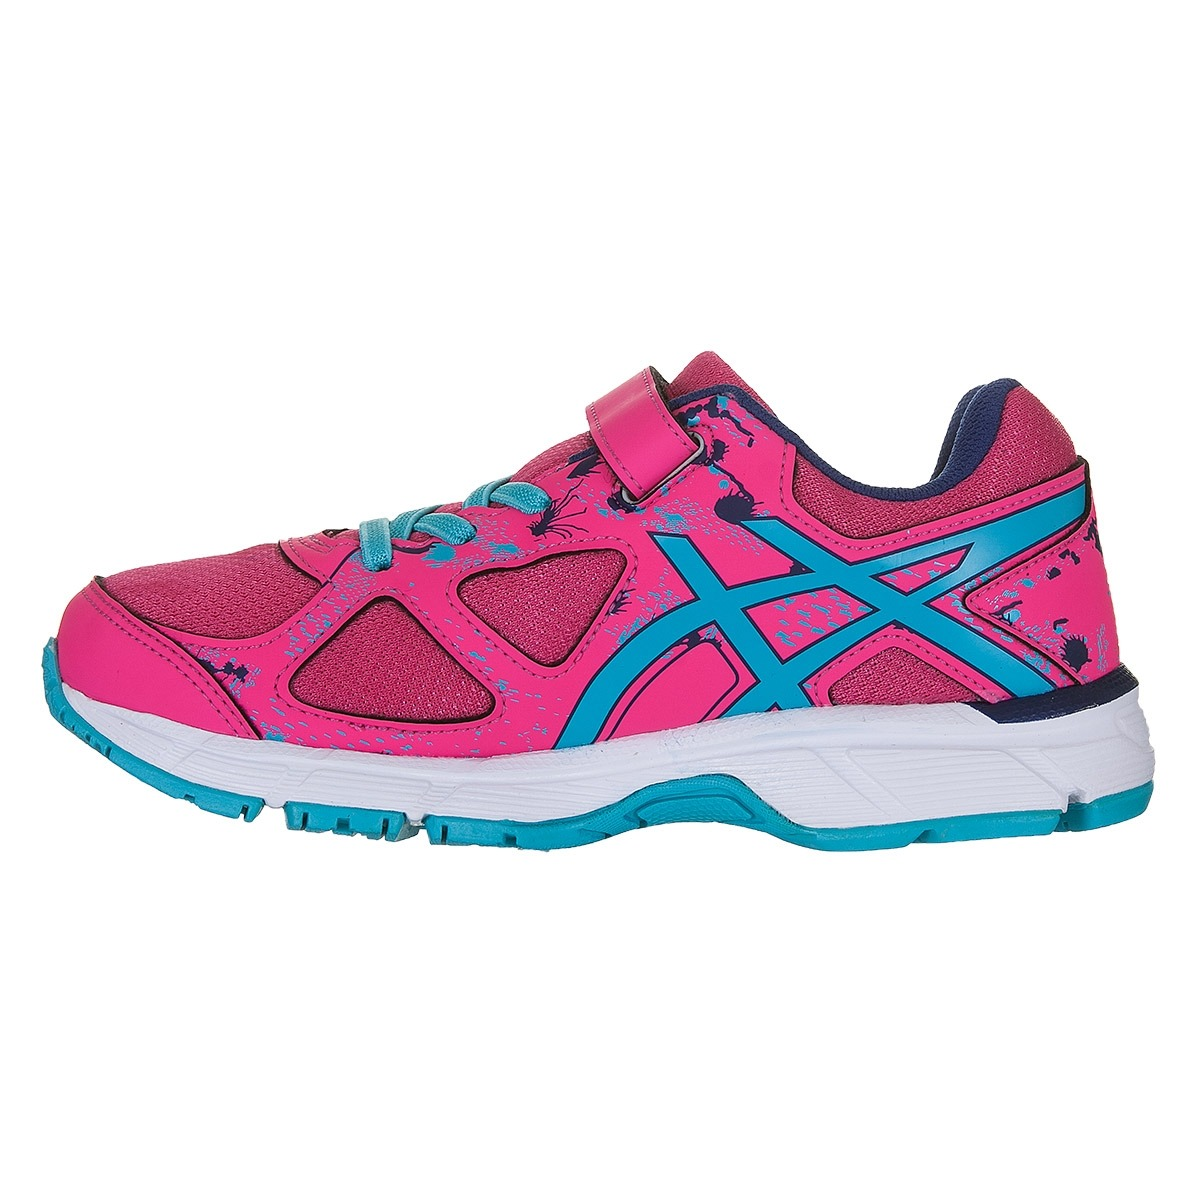 b8d82423834 tênis asics gel lightplay 3 ps infantil. Carregando zoom.